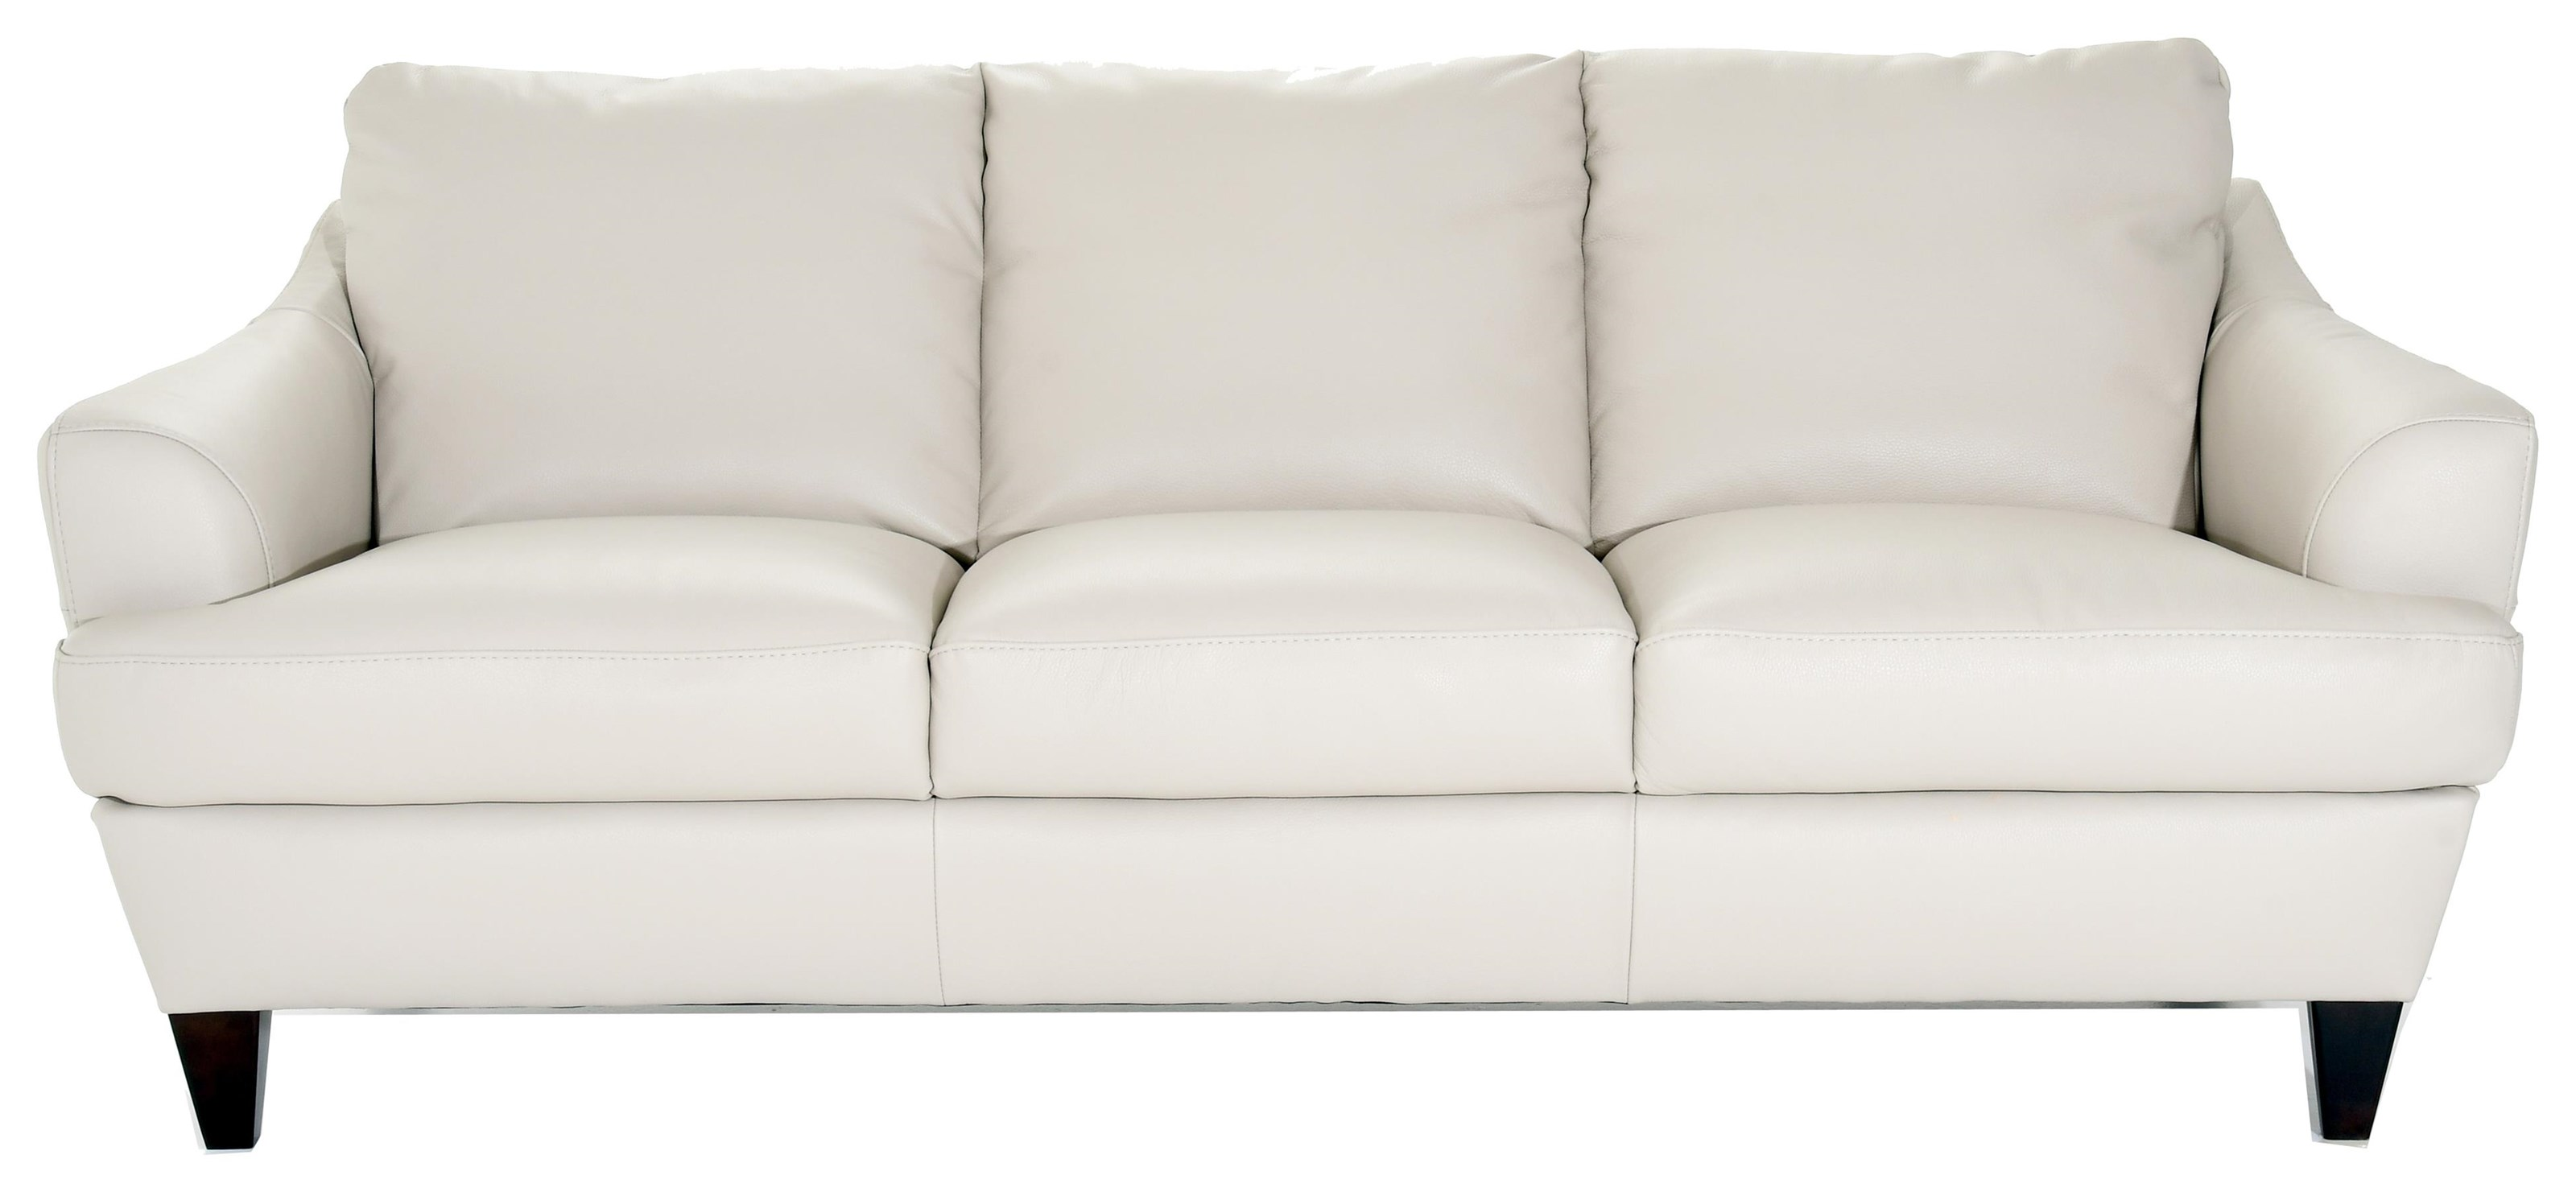 Natuzzi Editions Damiano Sofa - Item Number: B635-064 10BS